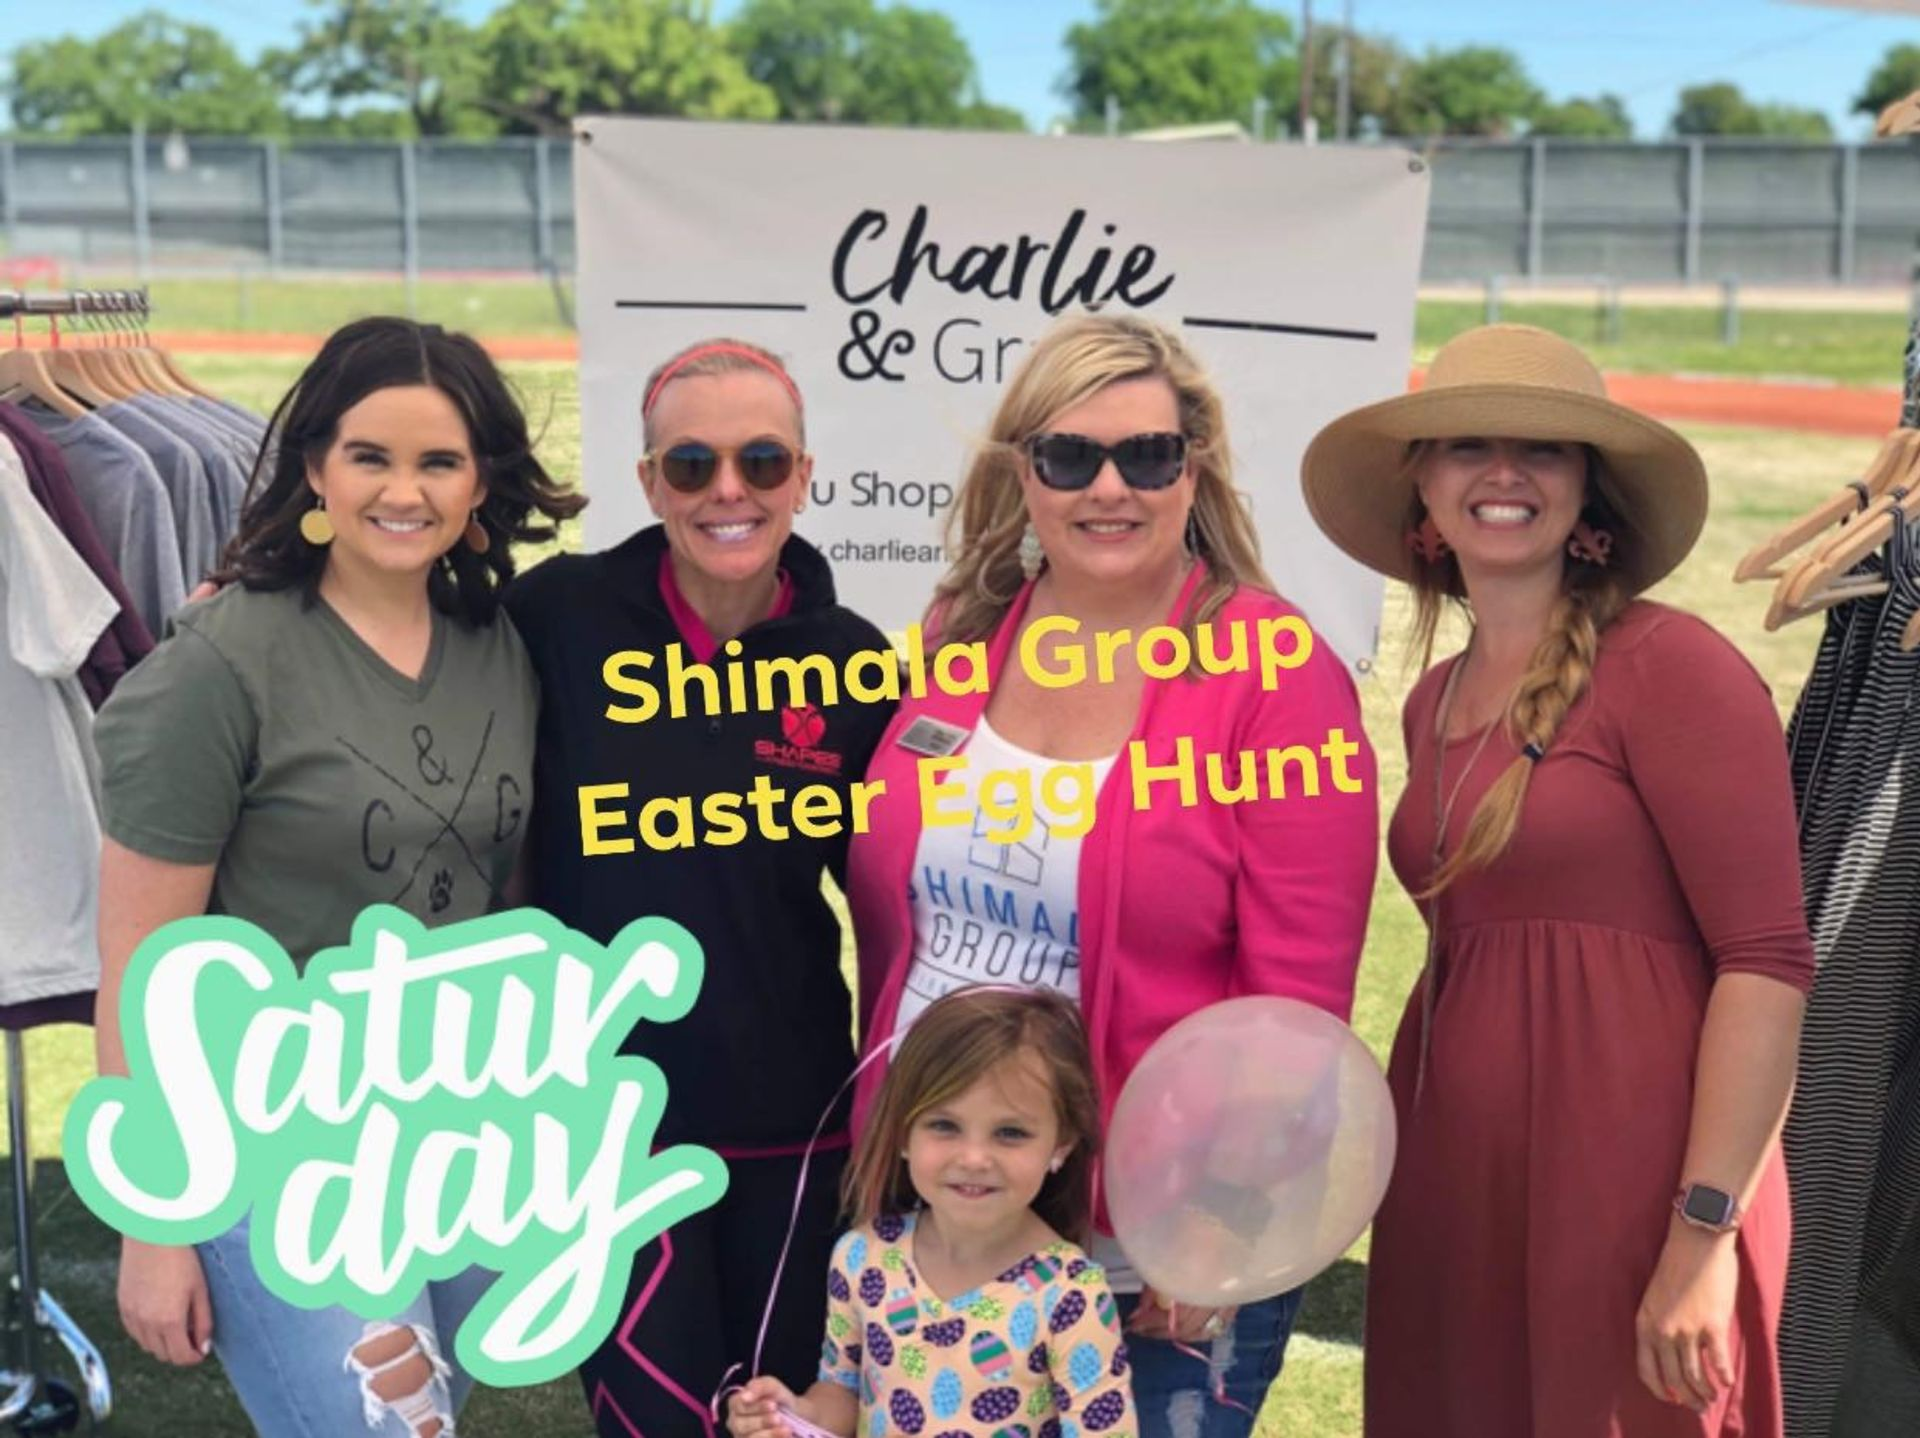 2019 Annual Shimala Group Easter Egg Hunt